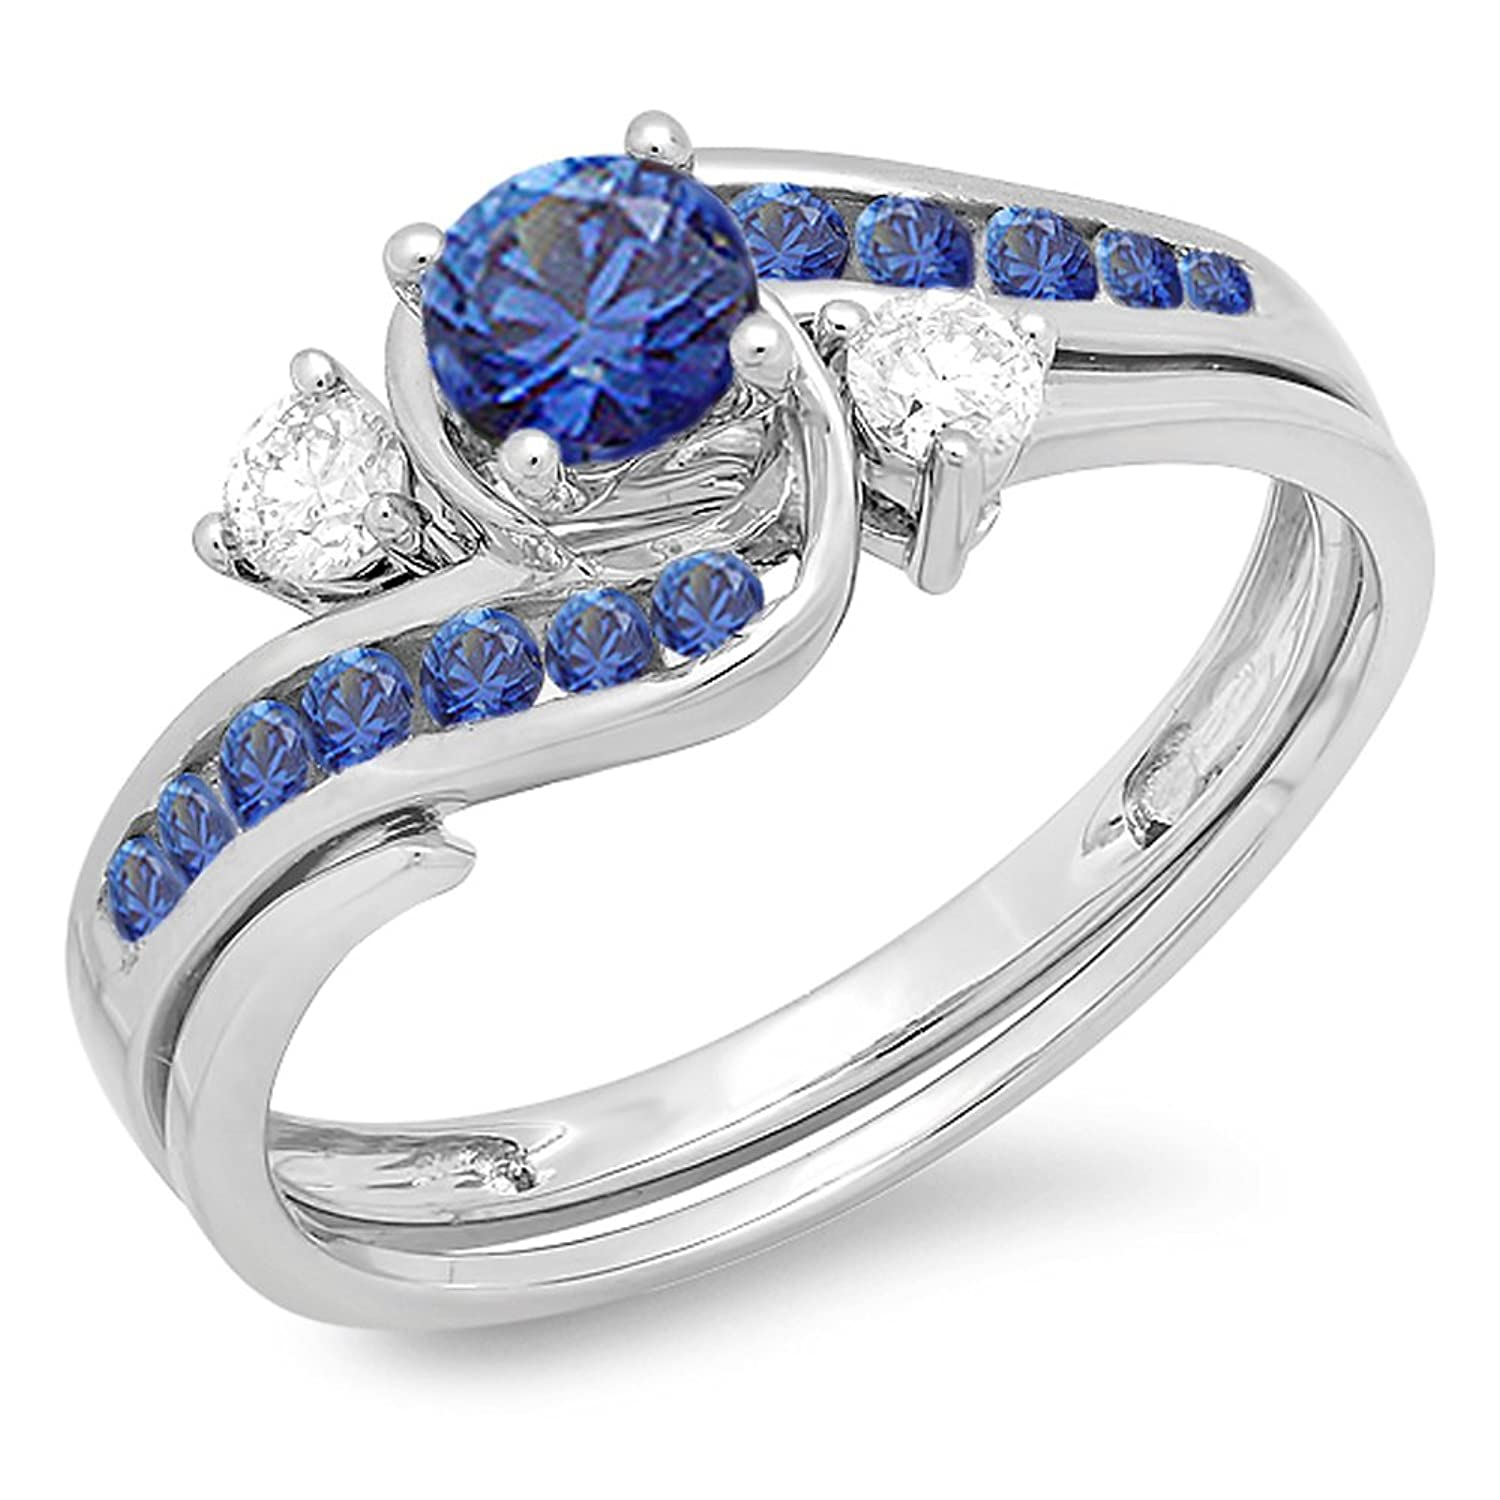 fullxfull rings engagement products ring il an wedding set tone eternity two sapphire gold half with